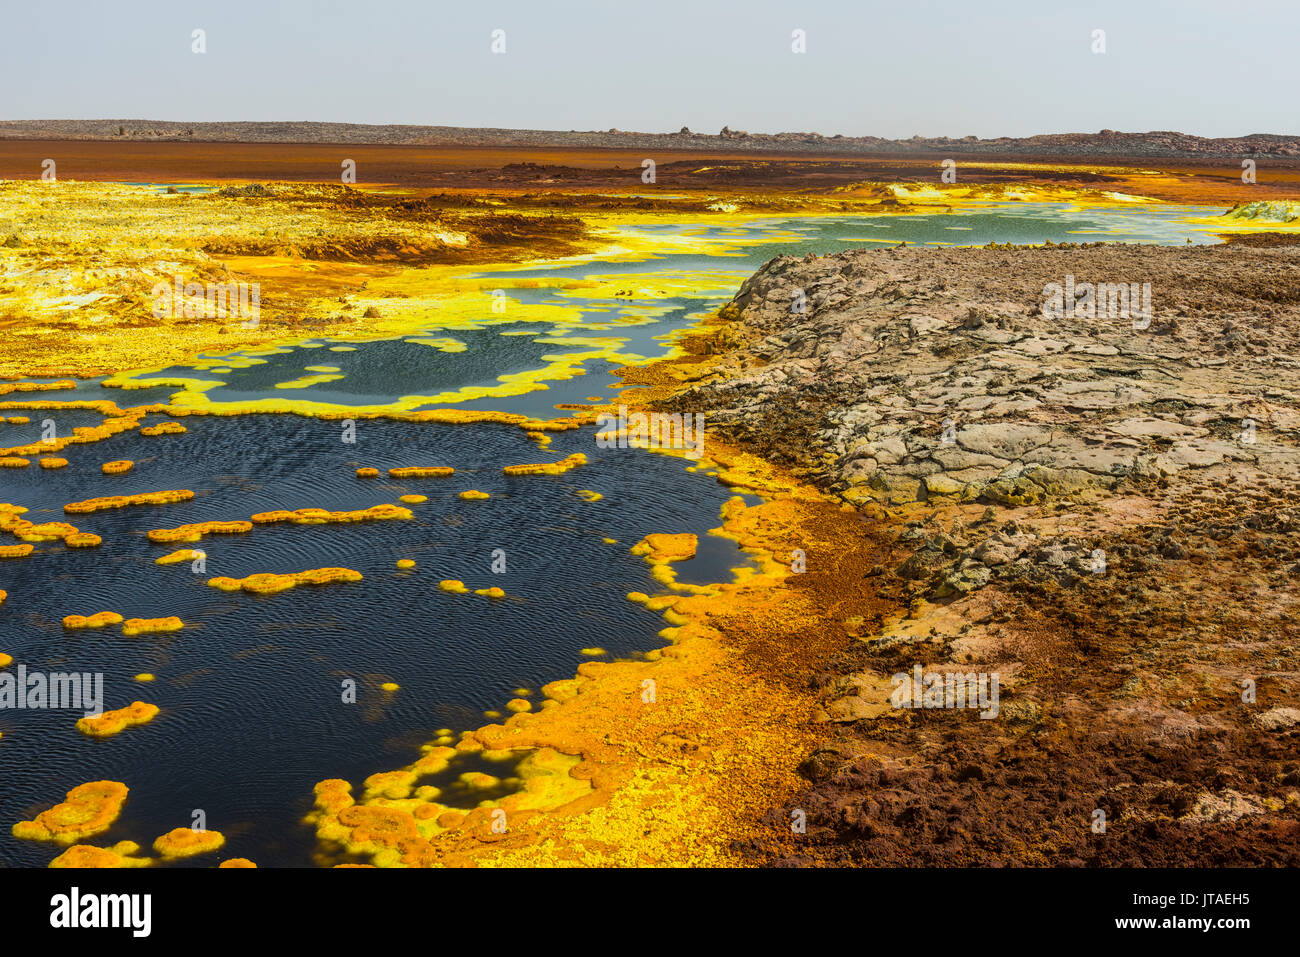 Colourful spings of acid in Dallol, hottest place on earth, Danakil depression, Ethiopia, Africa - Stock Image